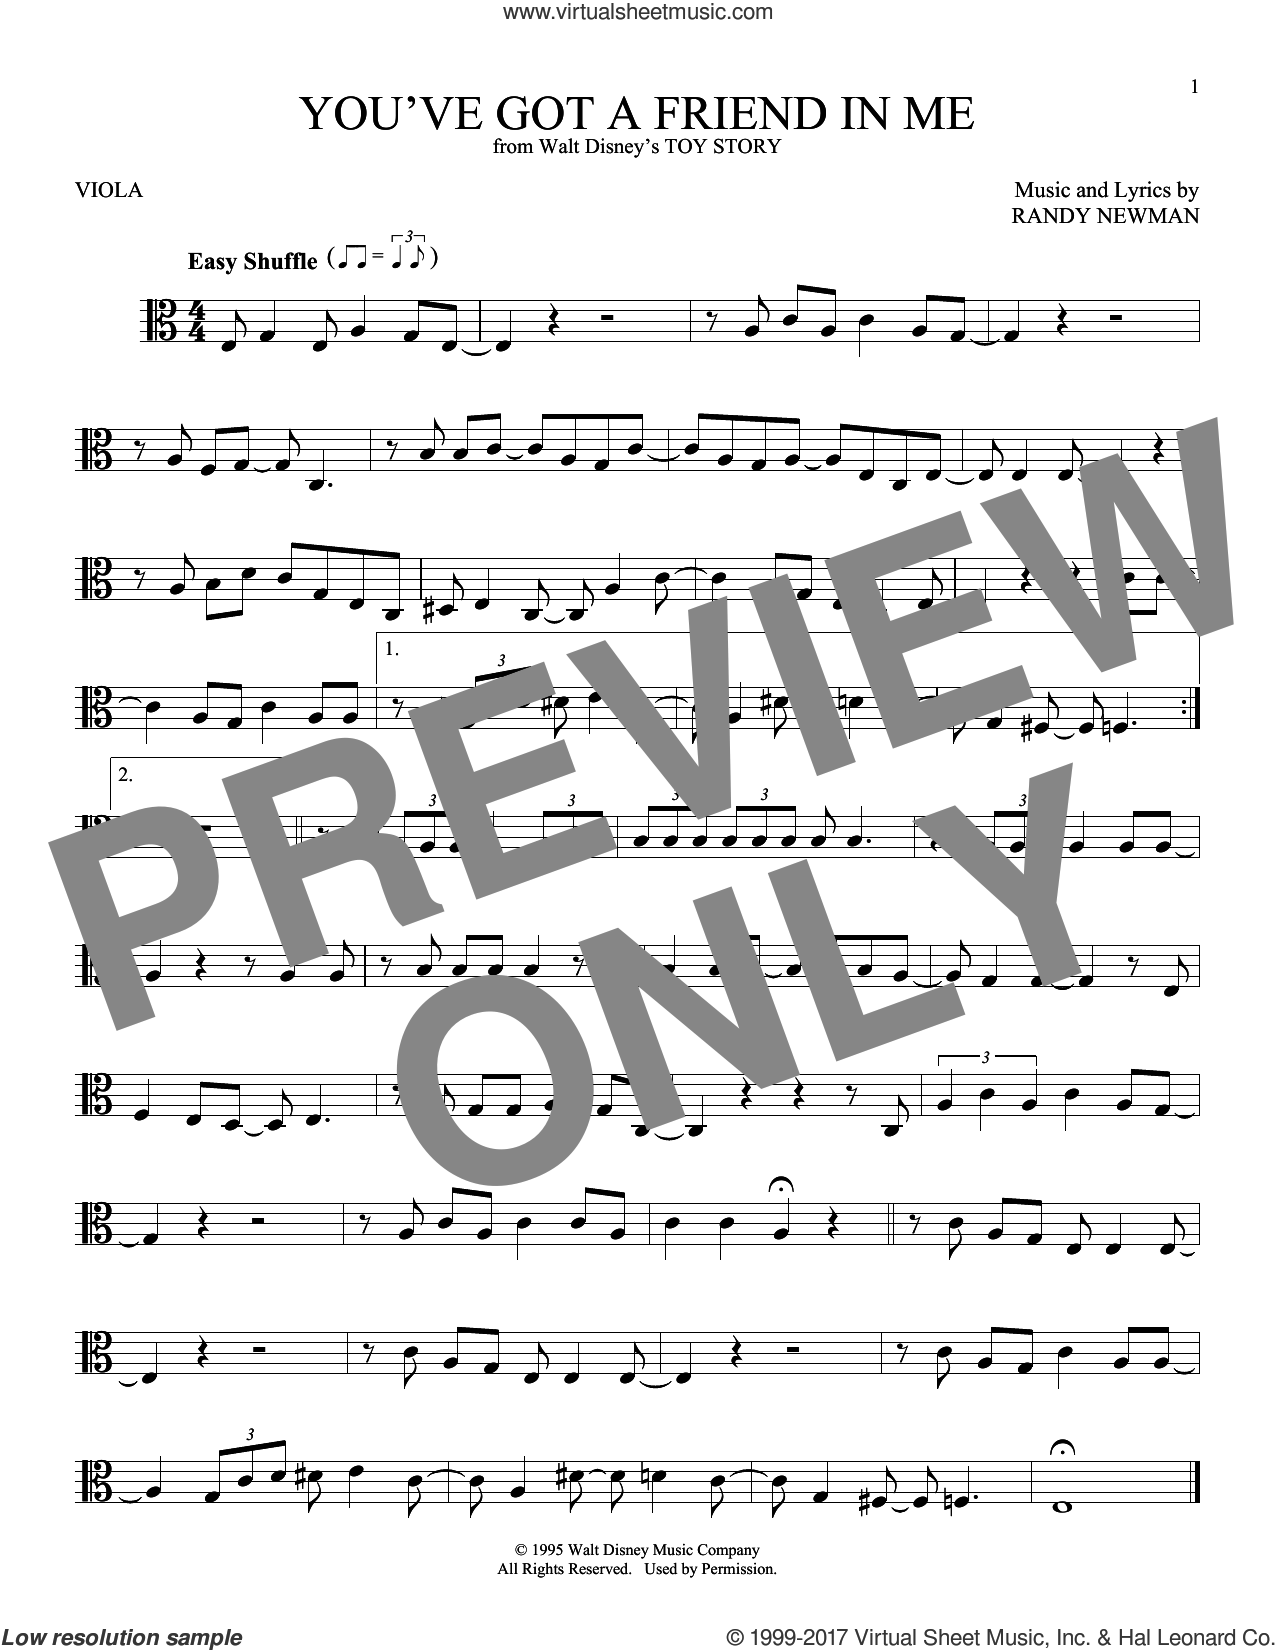 You've Got A Friend In Me sheet music for viola solo by Randy Newman, intermediate skill level